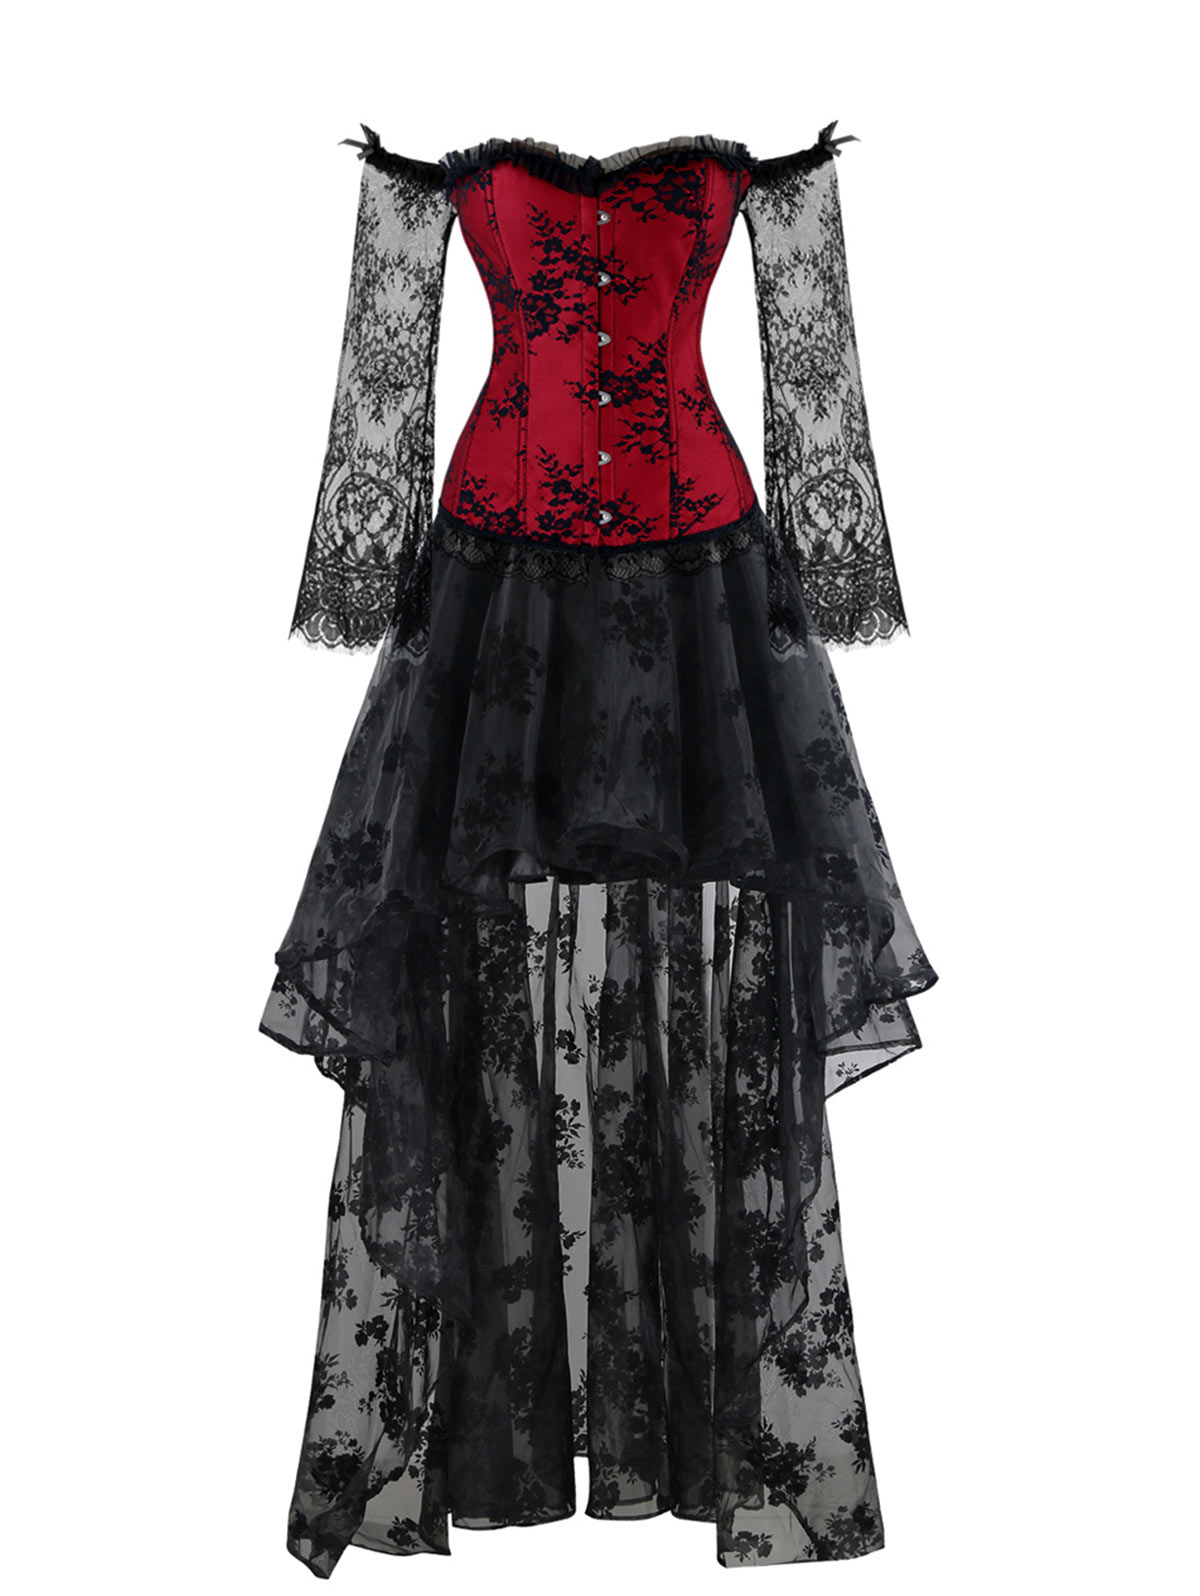 Retro Vintage Gothic Victorian High-Low Lace Party Cocktail Formal ...